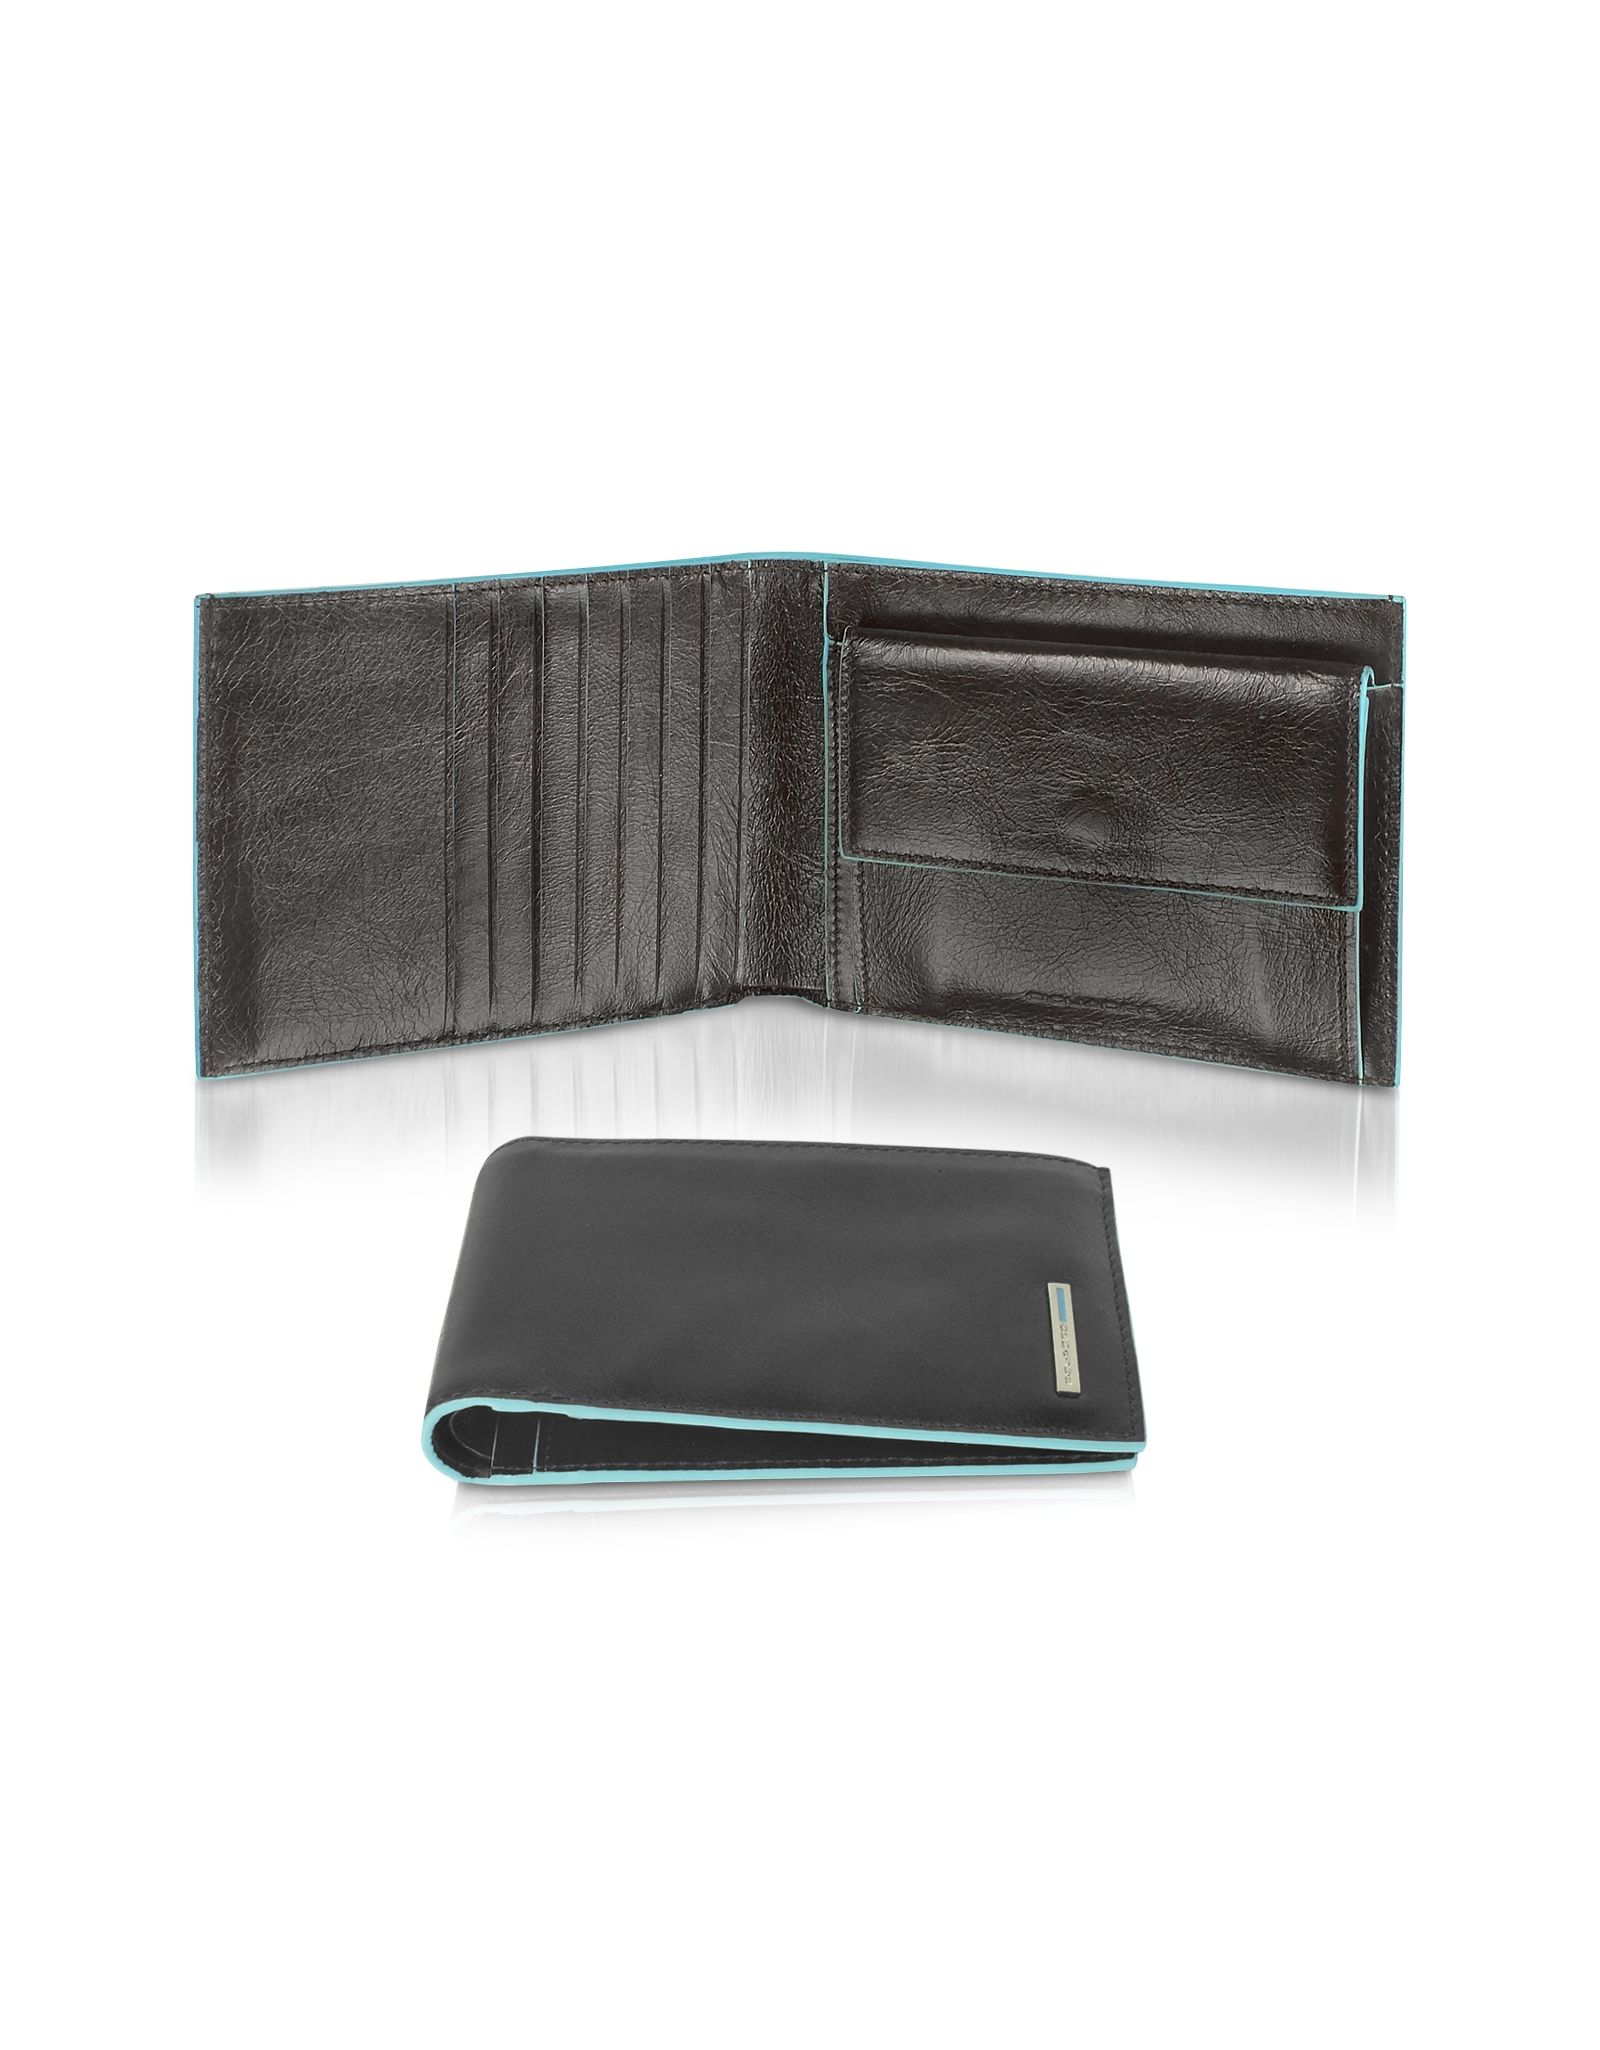 Piquadro Wallets, Square-Men's Leather ID Wallet